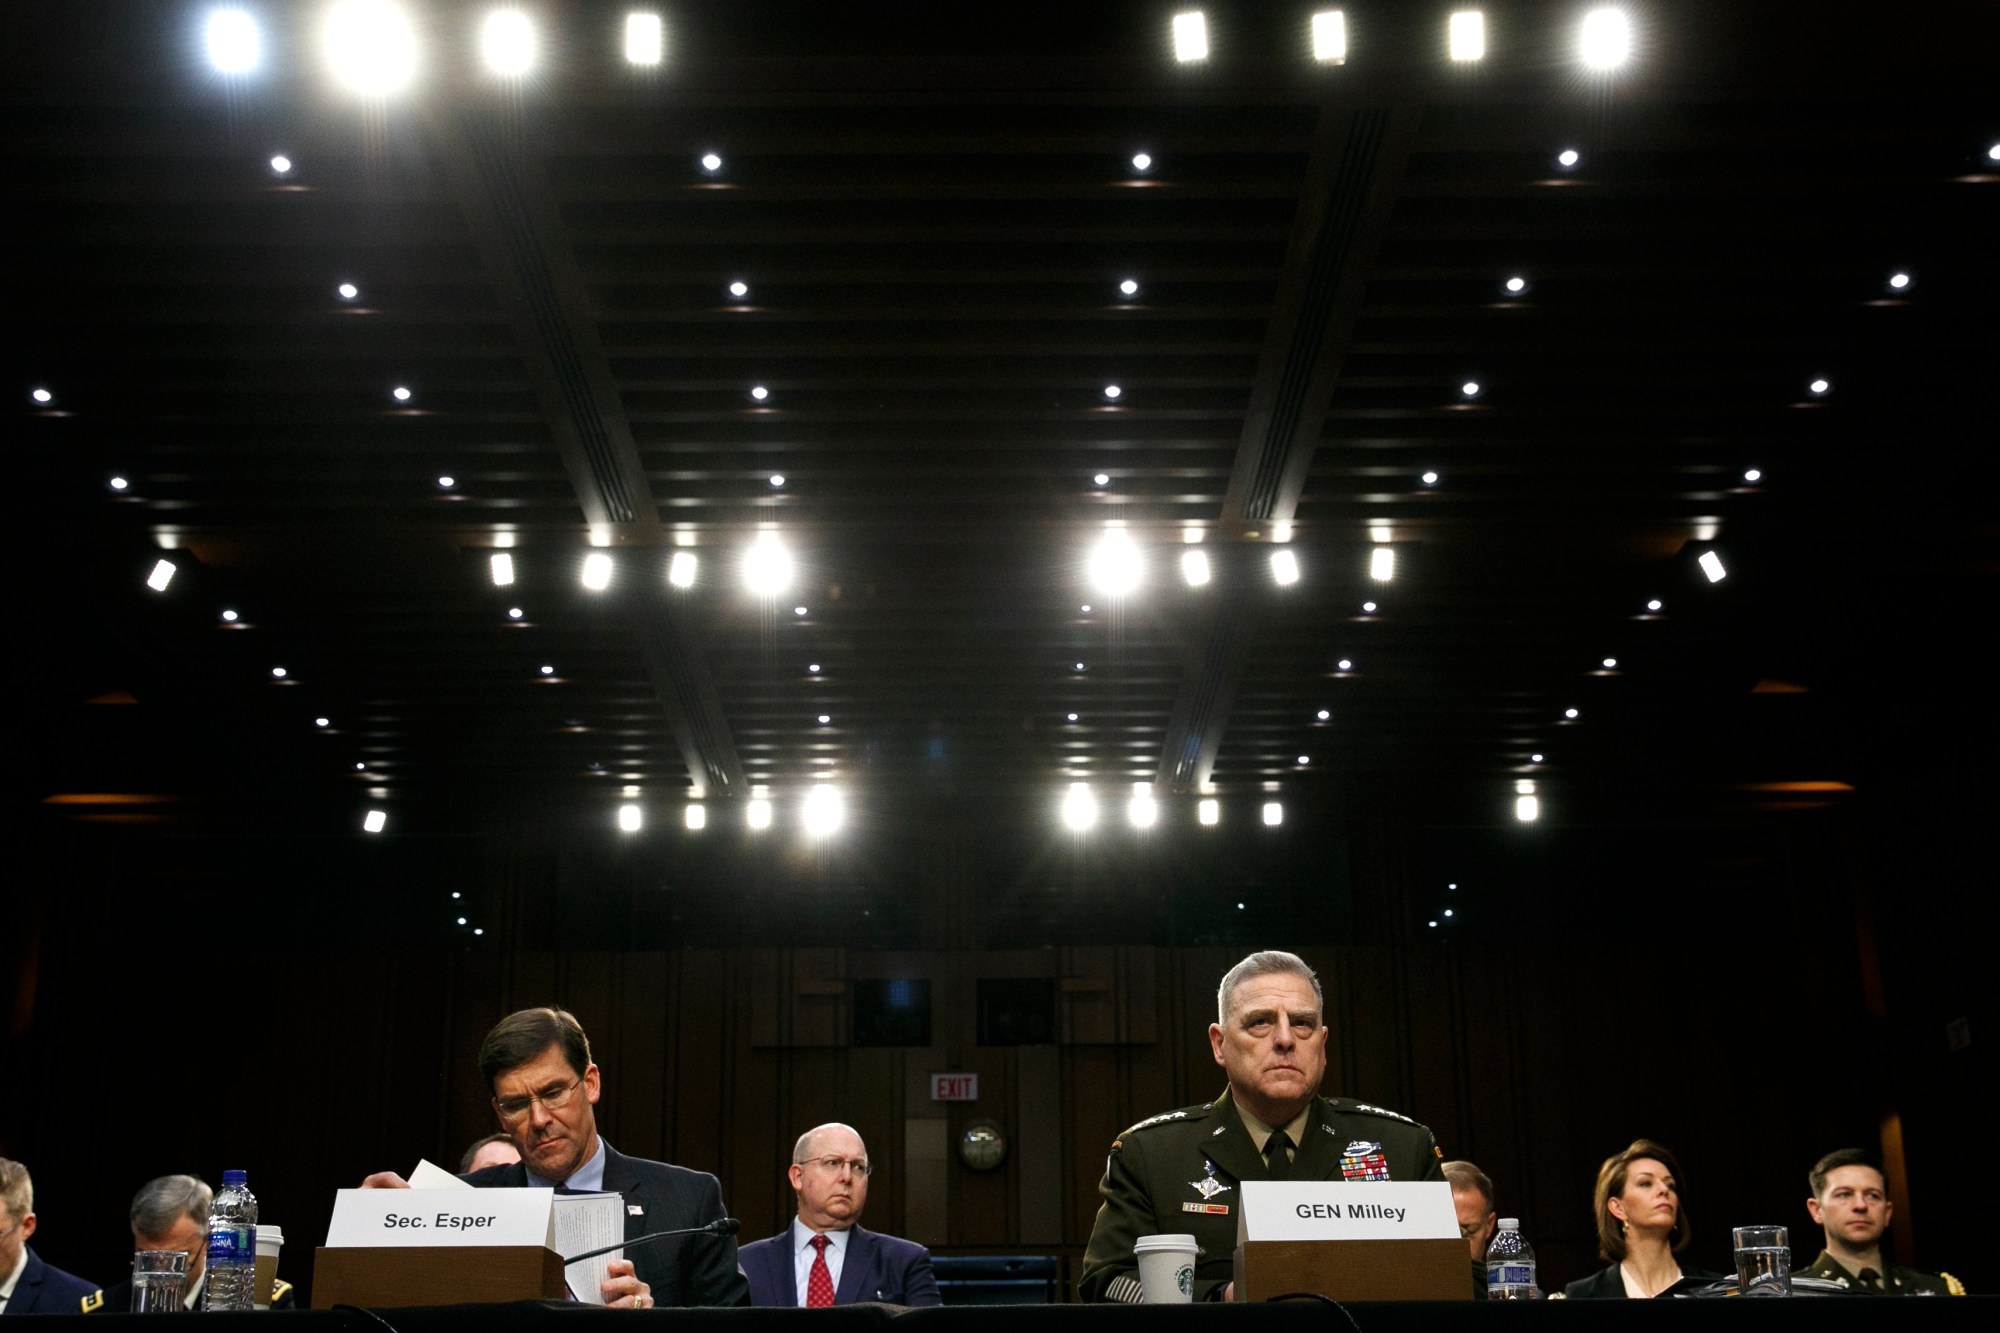 Defense Secretary Mark Esper, left, and Chairman of the Joint Chiefs of Staff Gen. Mark Milley, listen during a Senate Armed Services Committee on budget posture on Capitol Hill in Washington, on March 4, 2020. (AP Photo/Jacquelyn Martin, File)